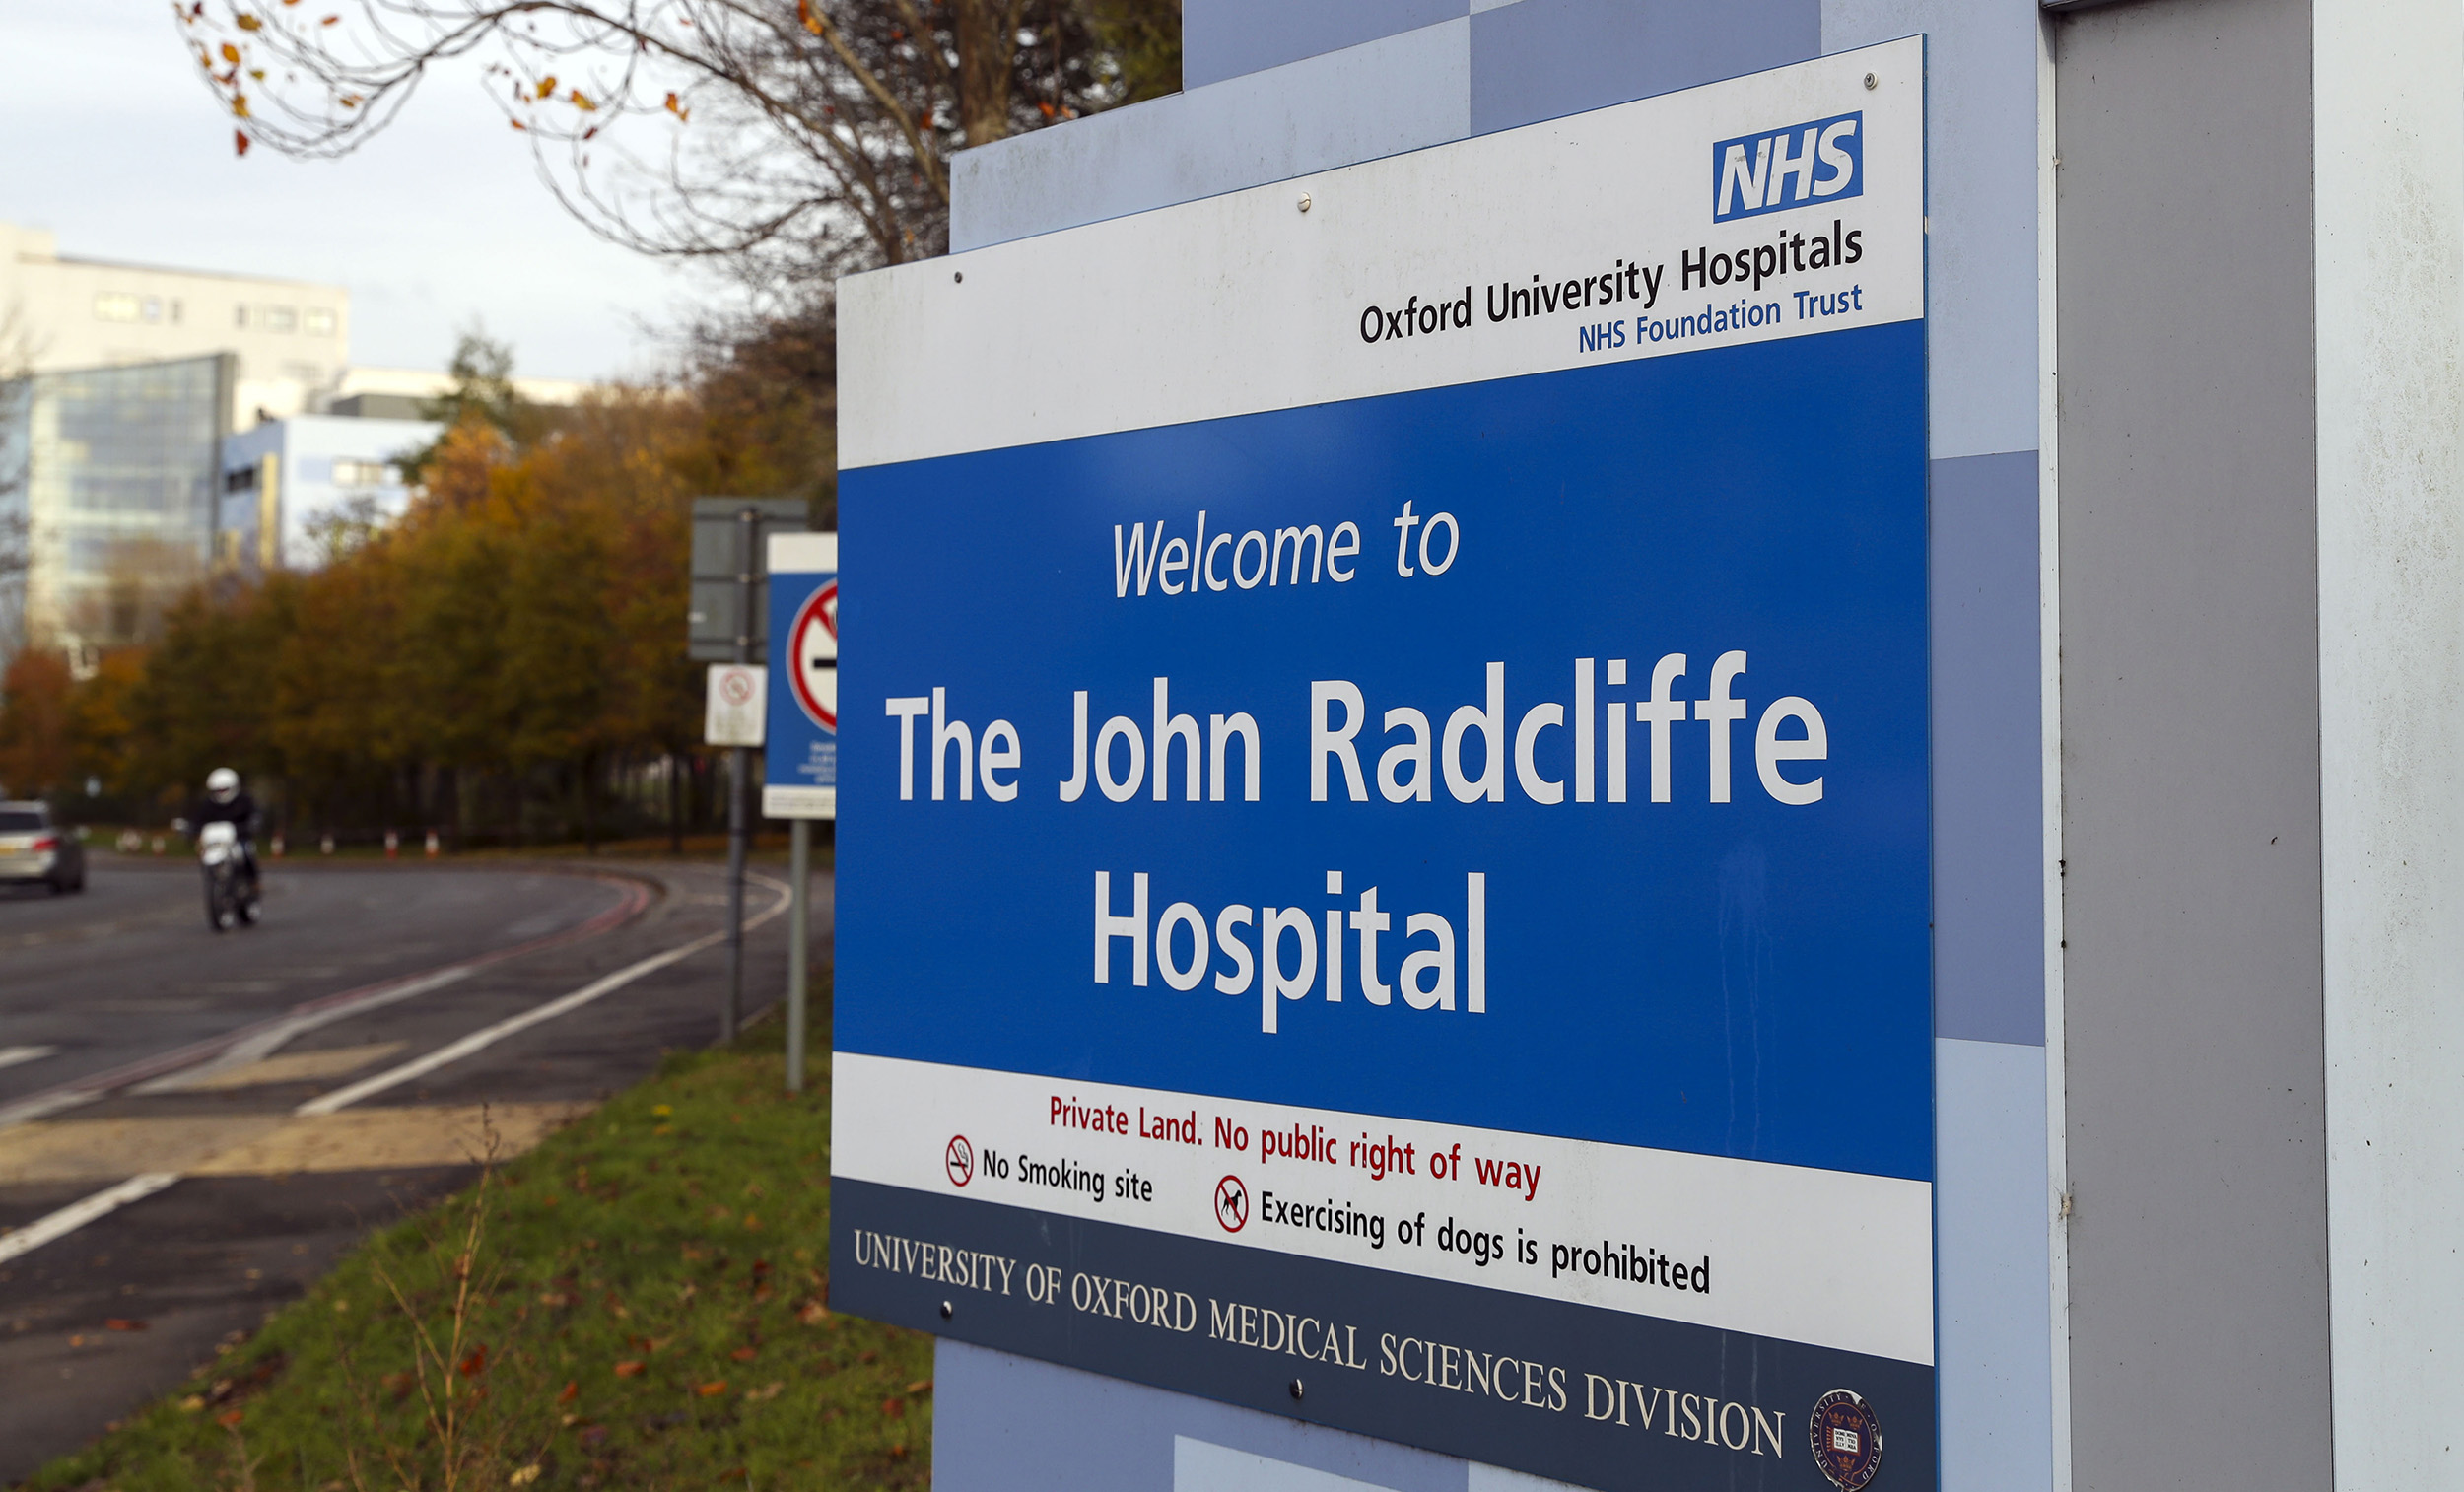 The John Radcliffe Hospital in Oxford, England.